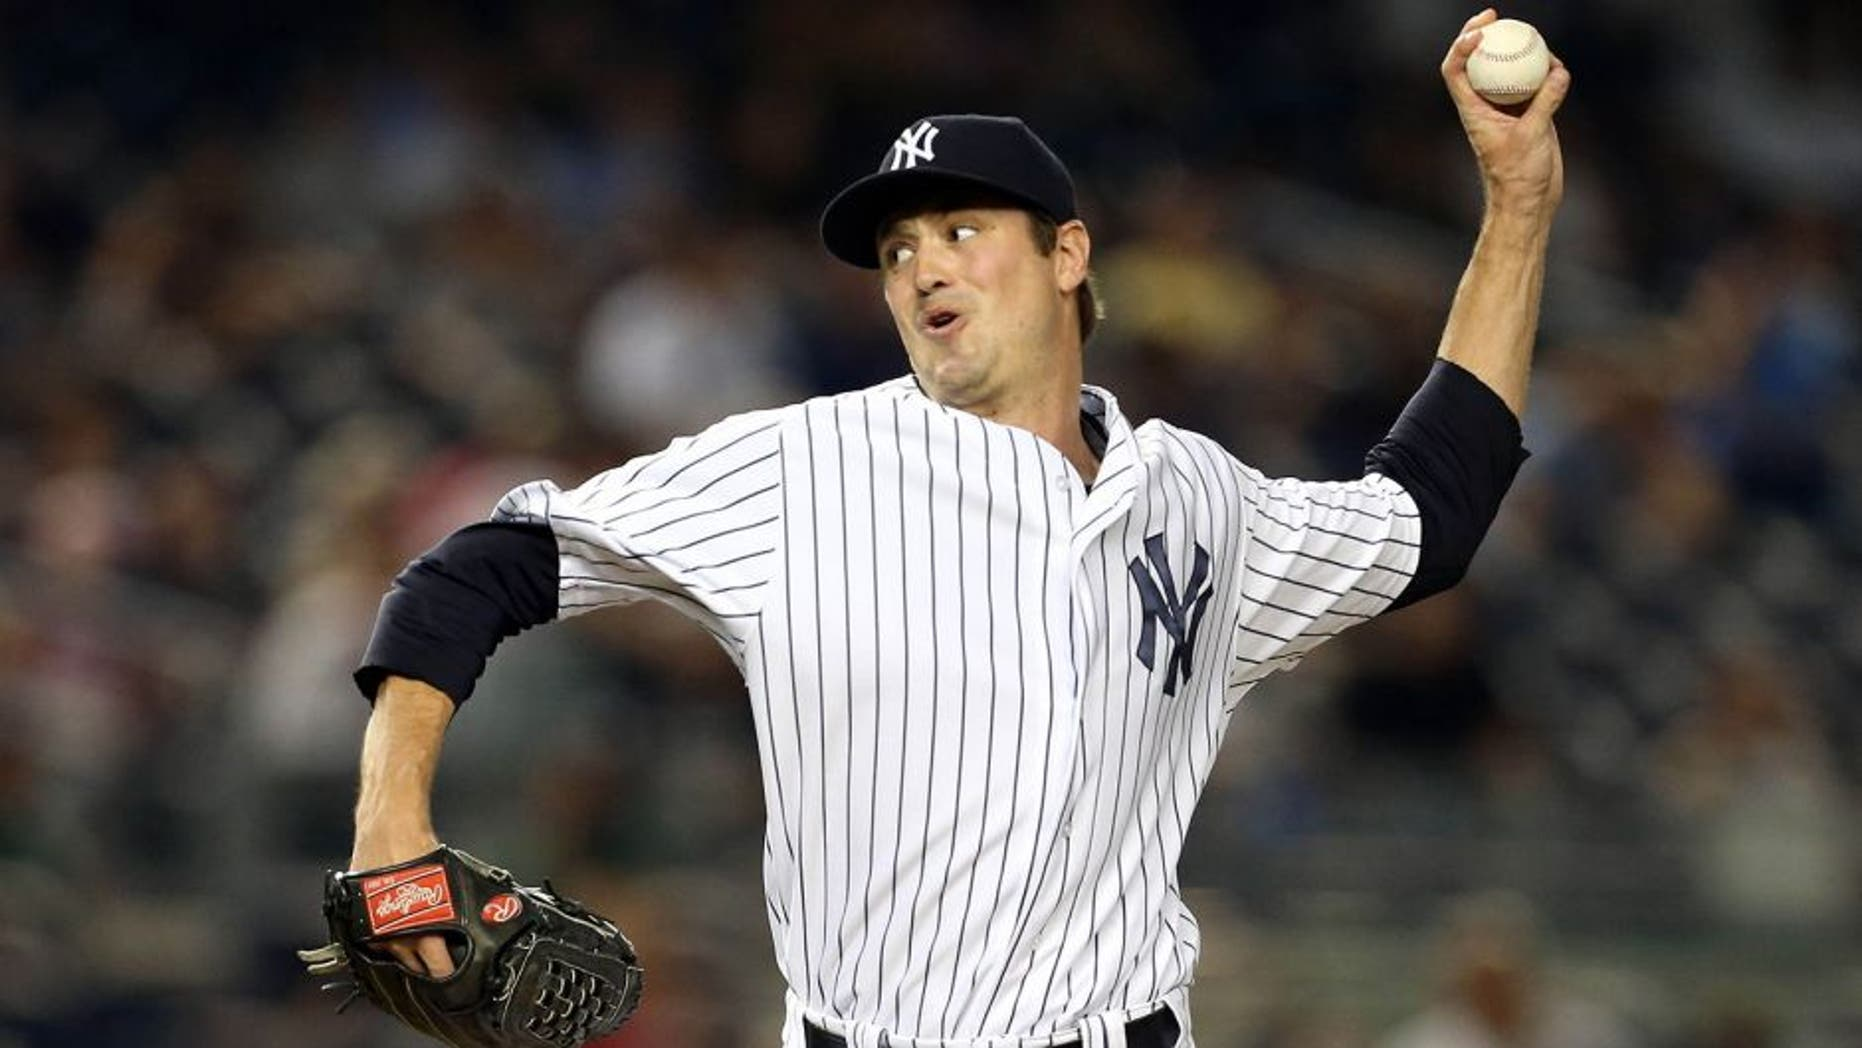 Aug 17, 2015; Bronx, NY, USA; New York Yankees relief pitcher Andrew Miller (48) pitches against the Minnesota Twins during the tenth inning at Yankee Stadium. The Yankees defeated the Twins 8 - 7. Mandatory Credit: Adam Hunger-USA TODAY Sports